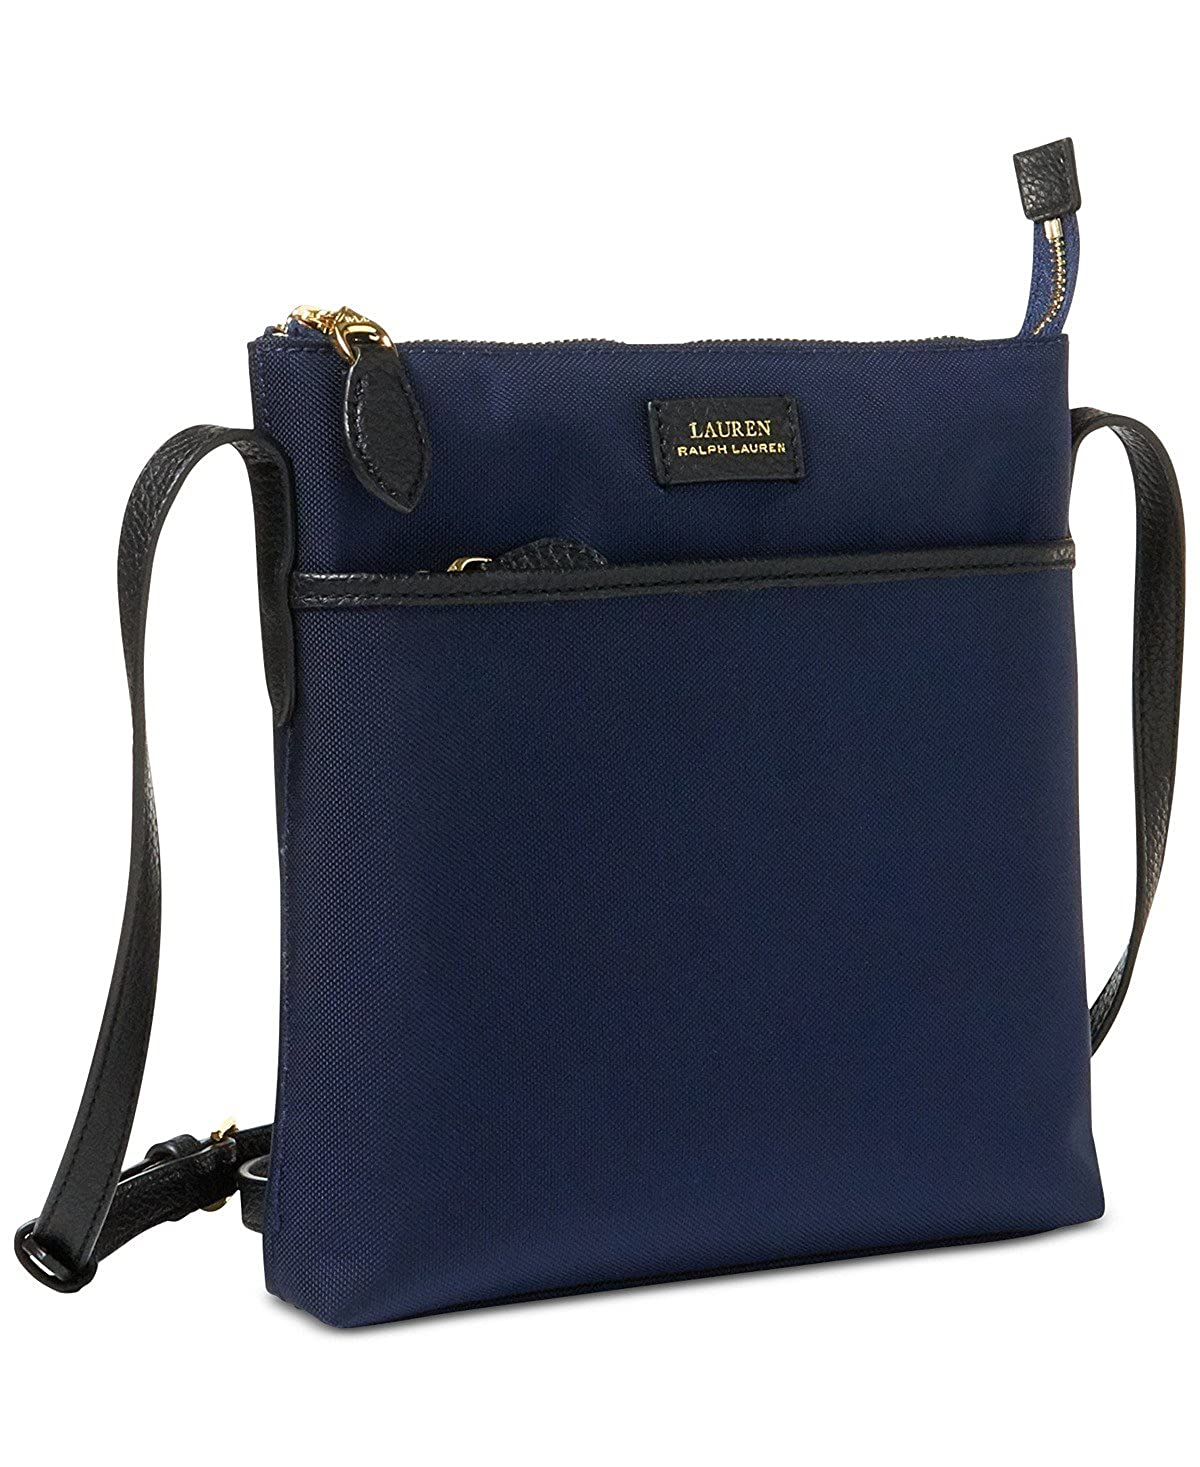 Lauren Ralph Lauren Chadwick Small Crossbody (Black)  Handbags  Amazon.com 401ee819a98ec